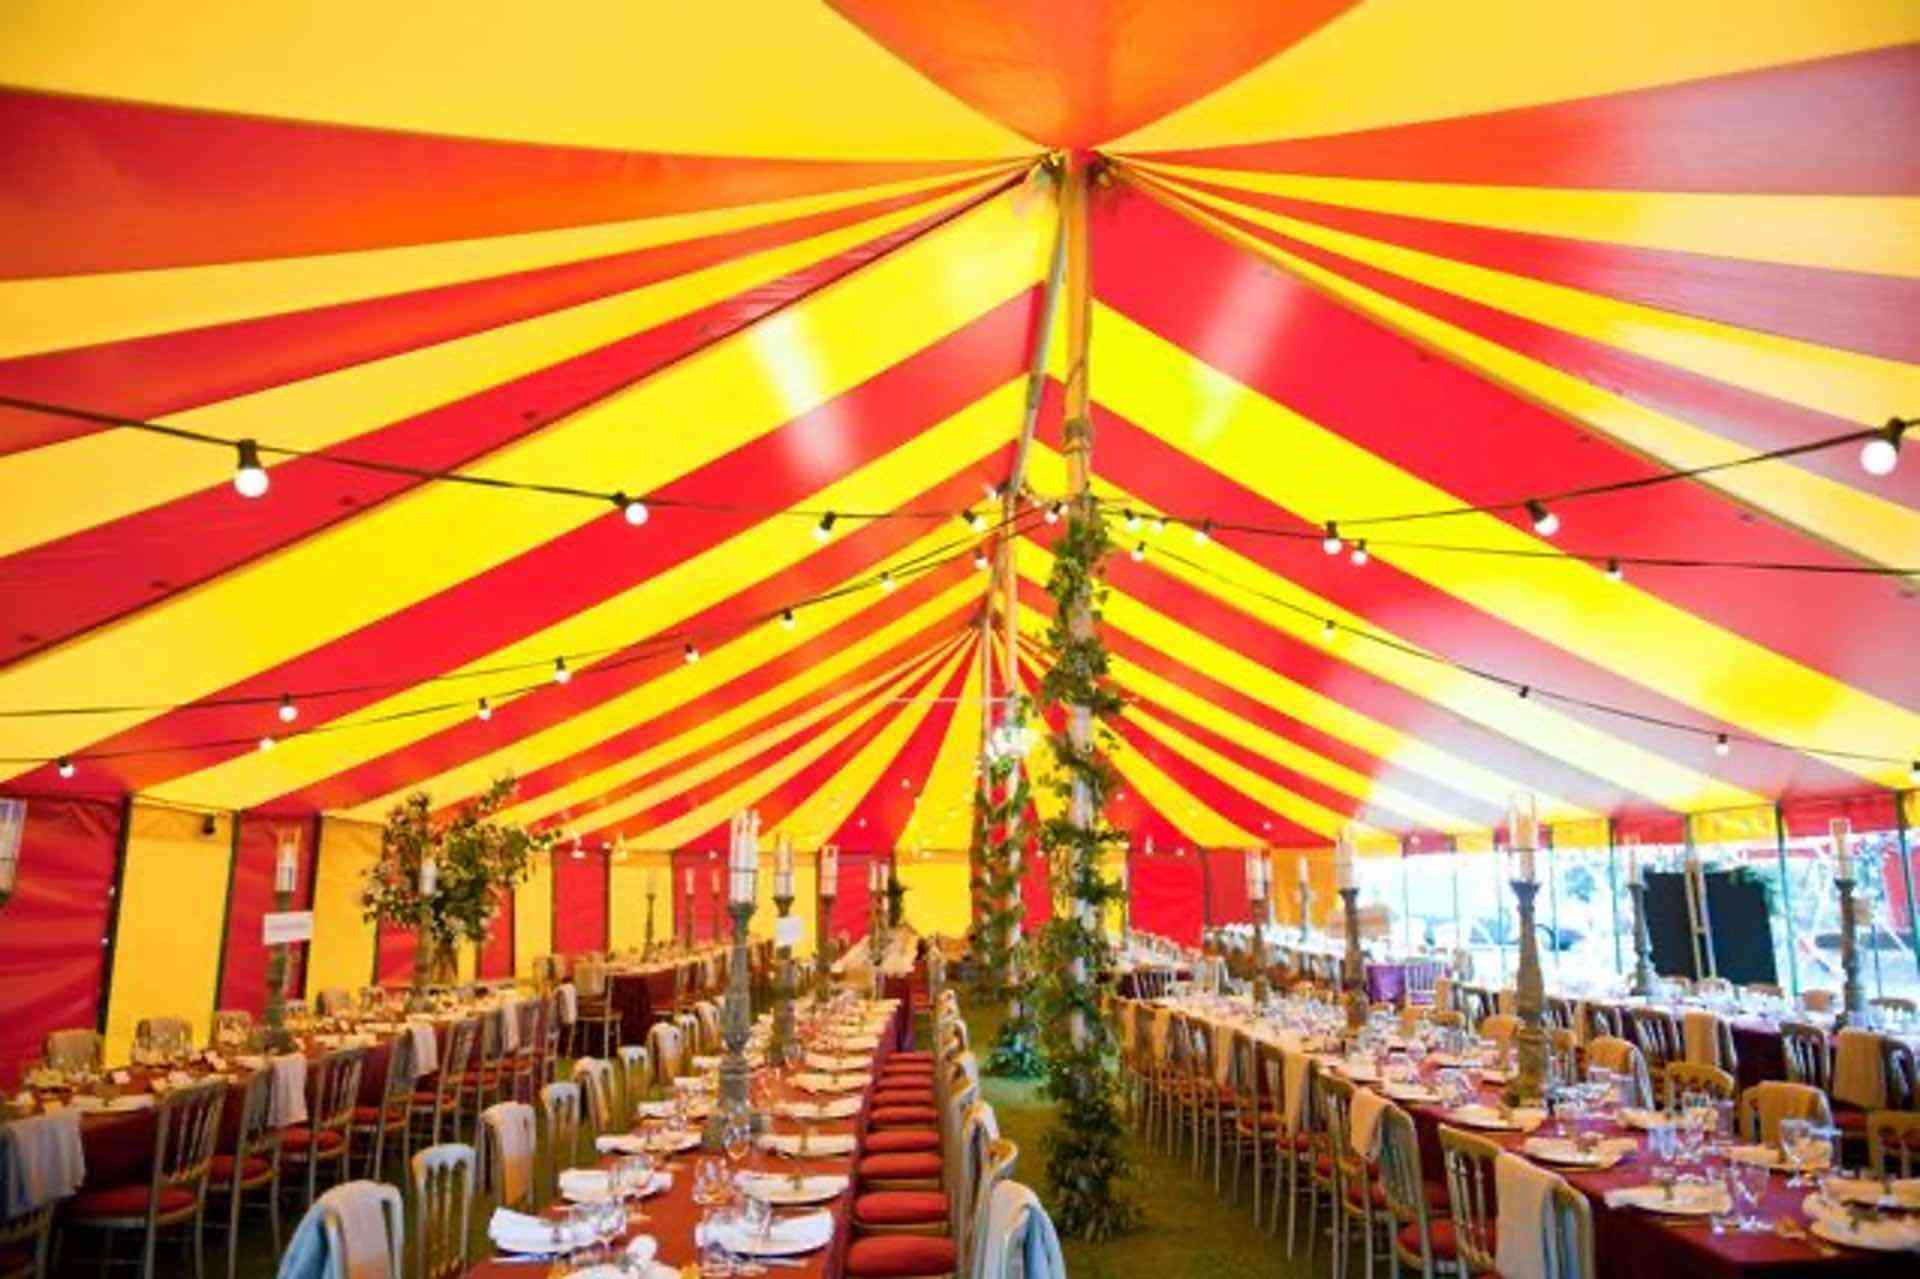 interior of stylish red and yellow circus style marquee